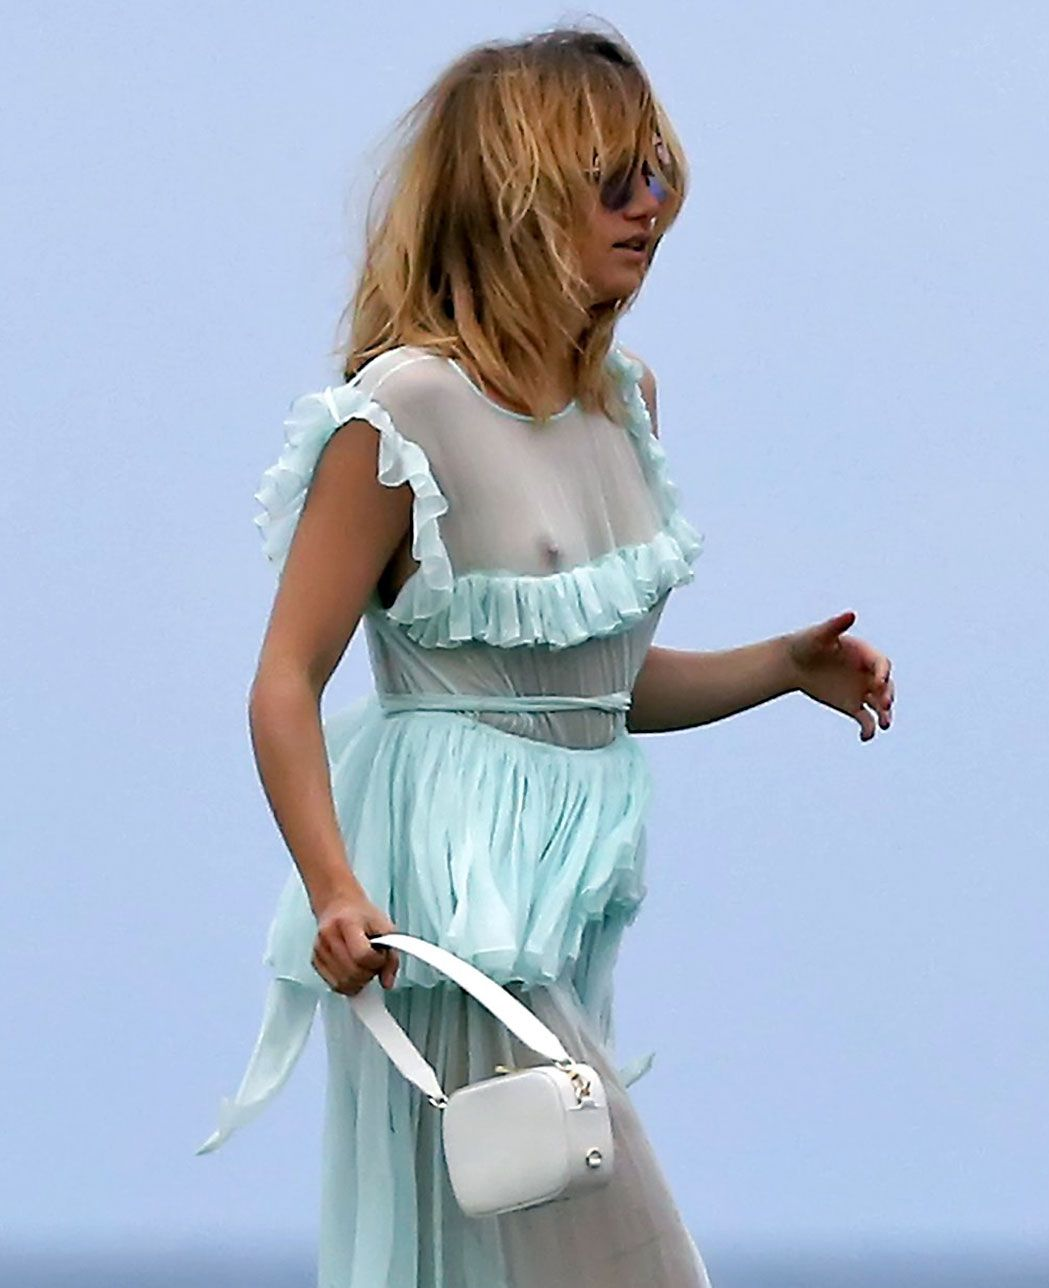 0907234845742_133_Suki-Waterhouse-nude-naked-sexy-topless-hot-cleavage-15-1-thefappeningblog.com_.jpg